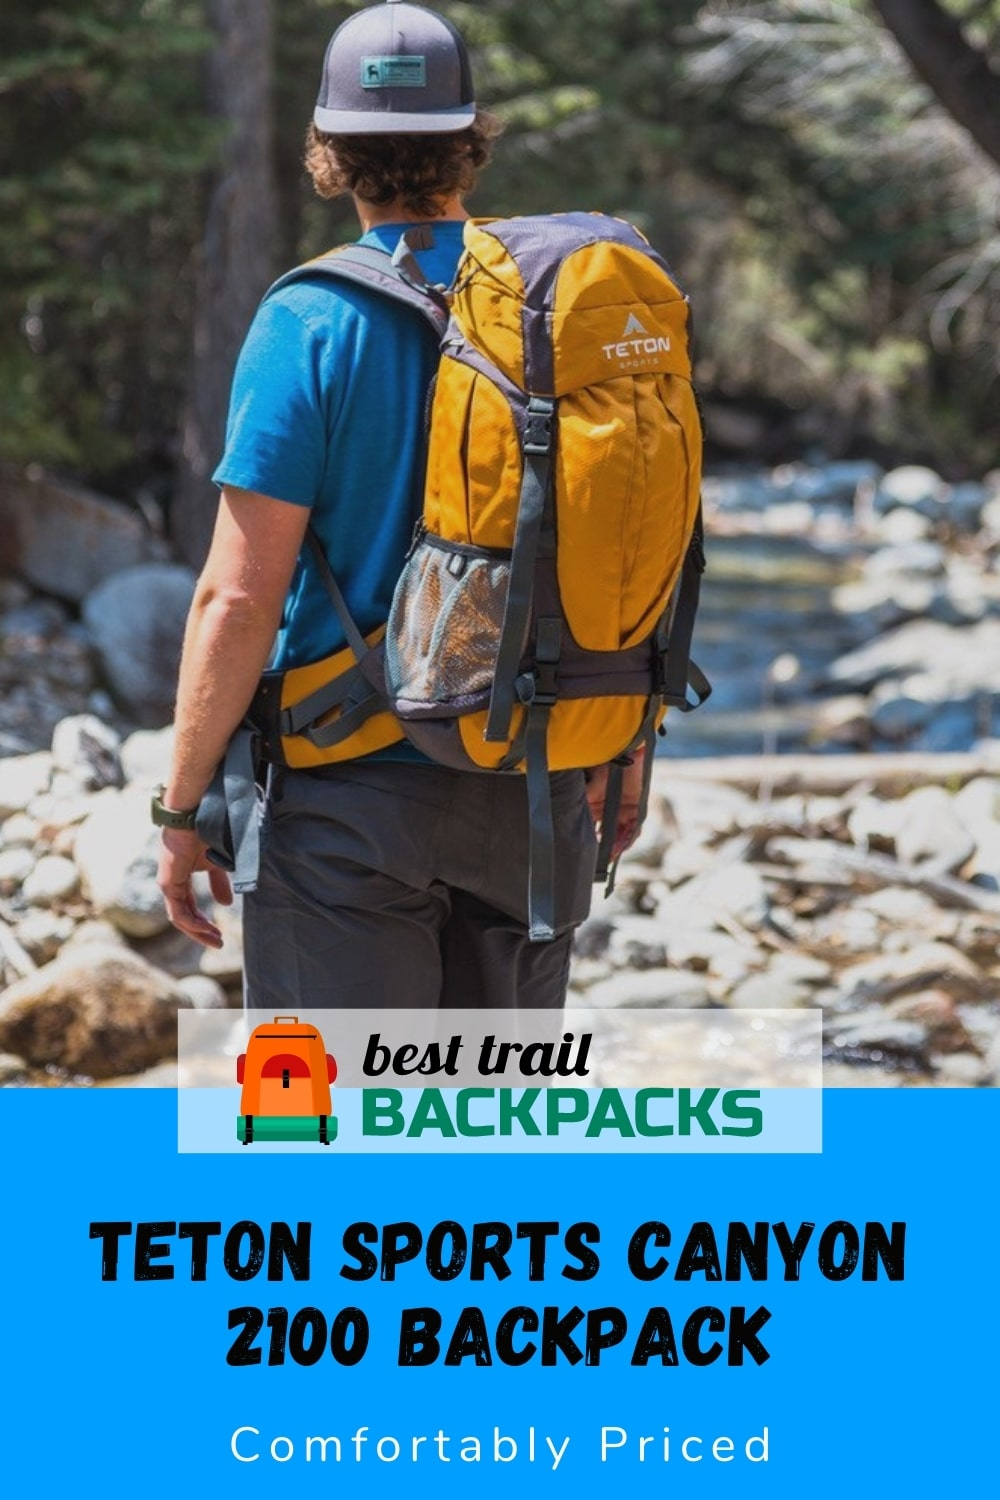 Teton Sports Canyon 2100 Backpack Review - Hiker with Backpack Standing Near a Stream